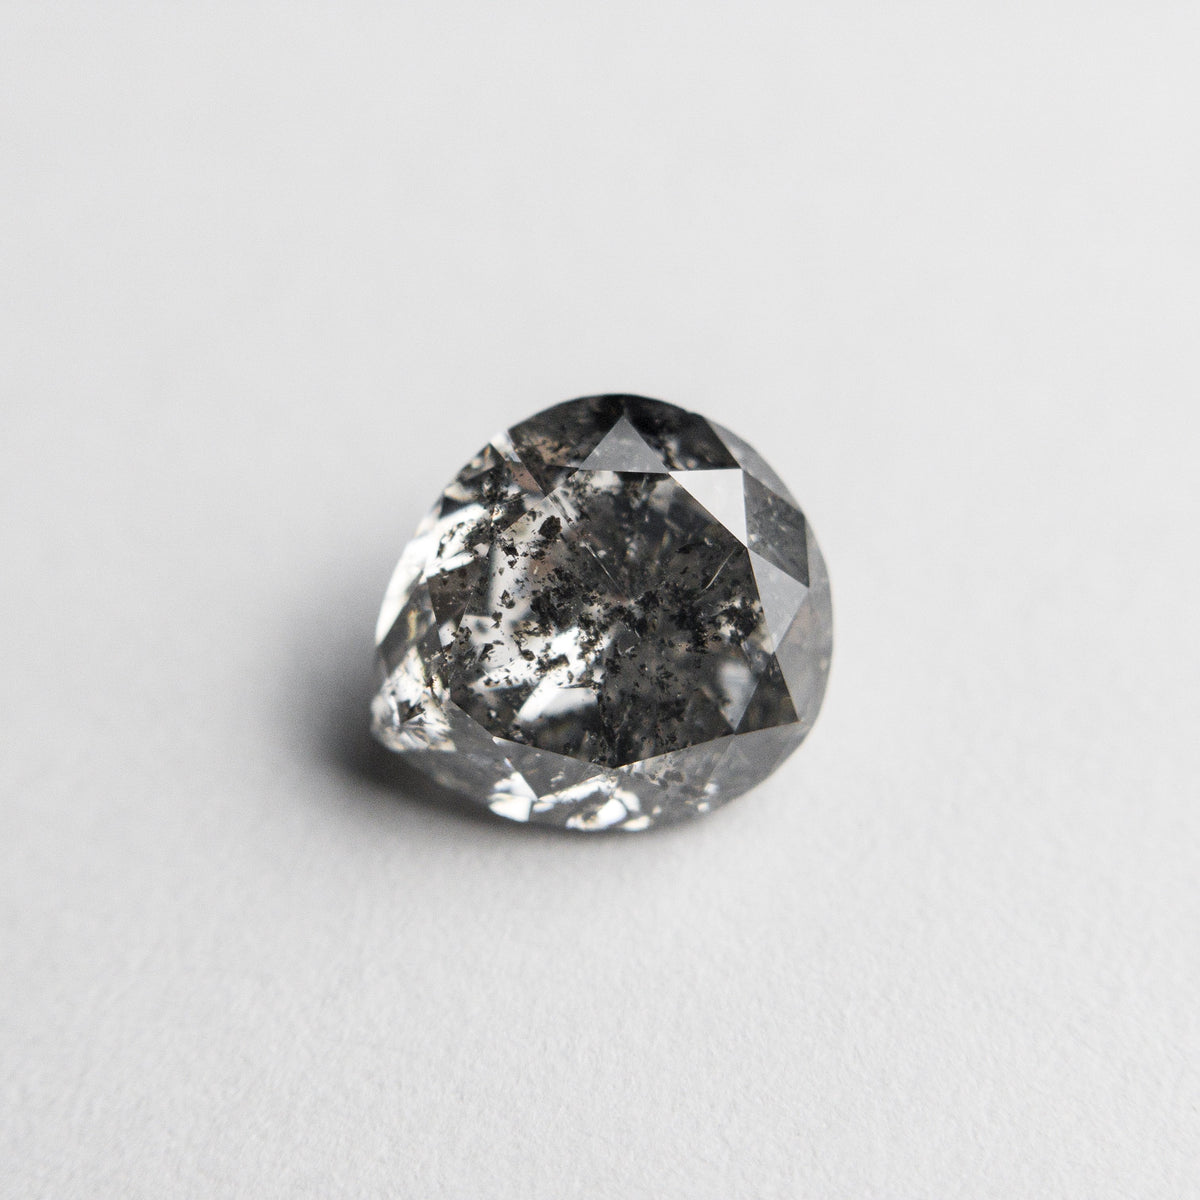 1.59ct 7.71x6.94x4.17mm Pear Brilliant 18452-03 hold D1709